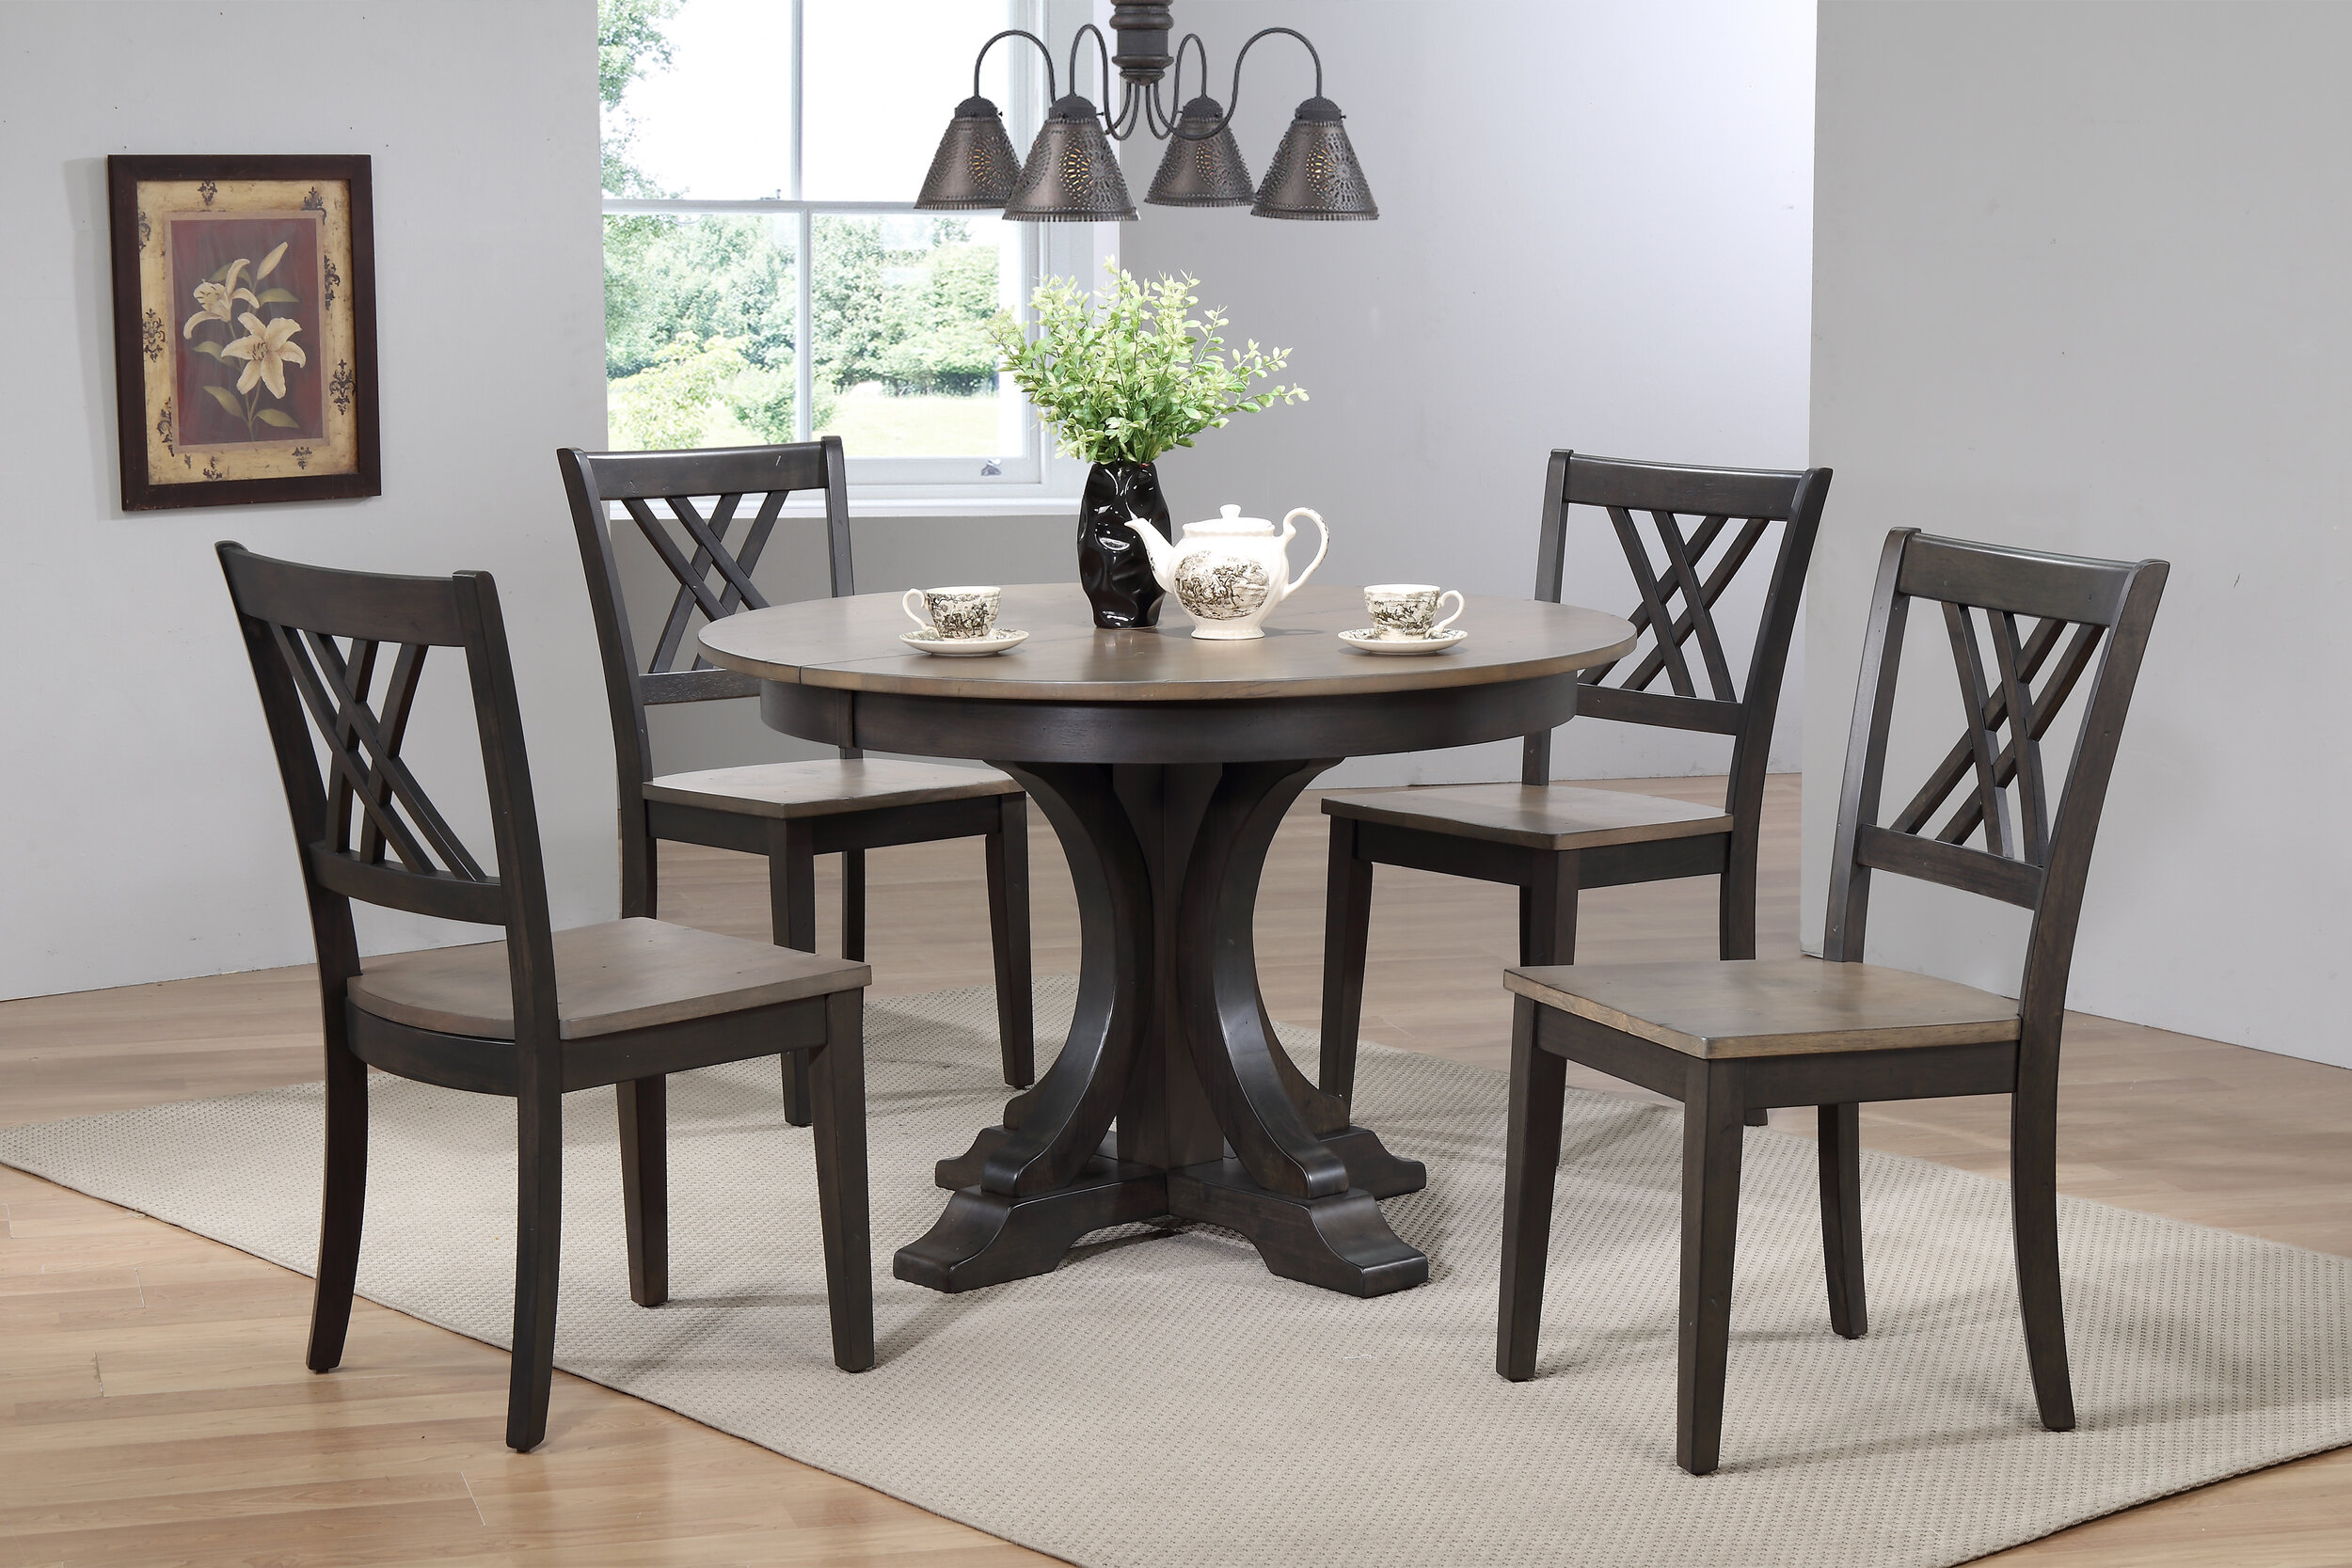 "45""x45""x63"" Deco Antiqued Grey Stone Black Stone Double X-Back (5-Piece Dining Set)"